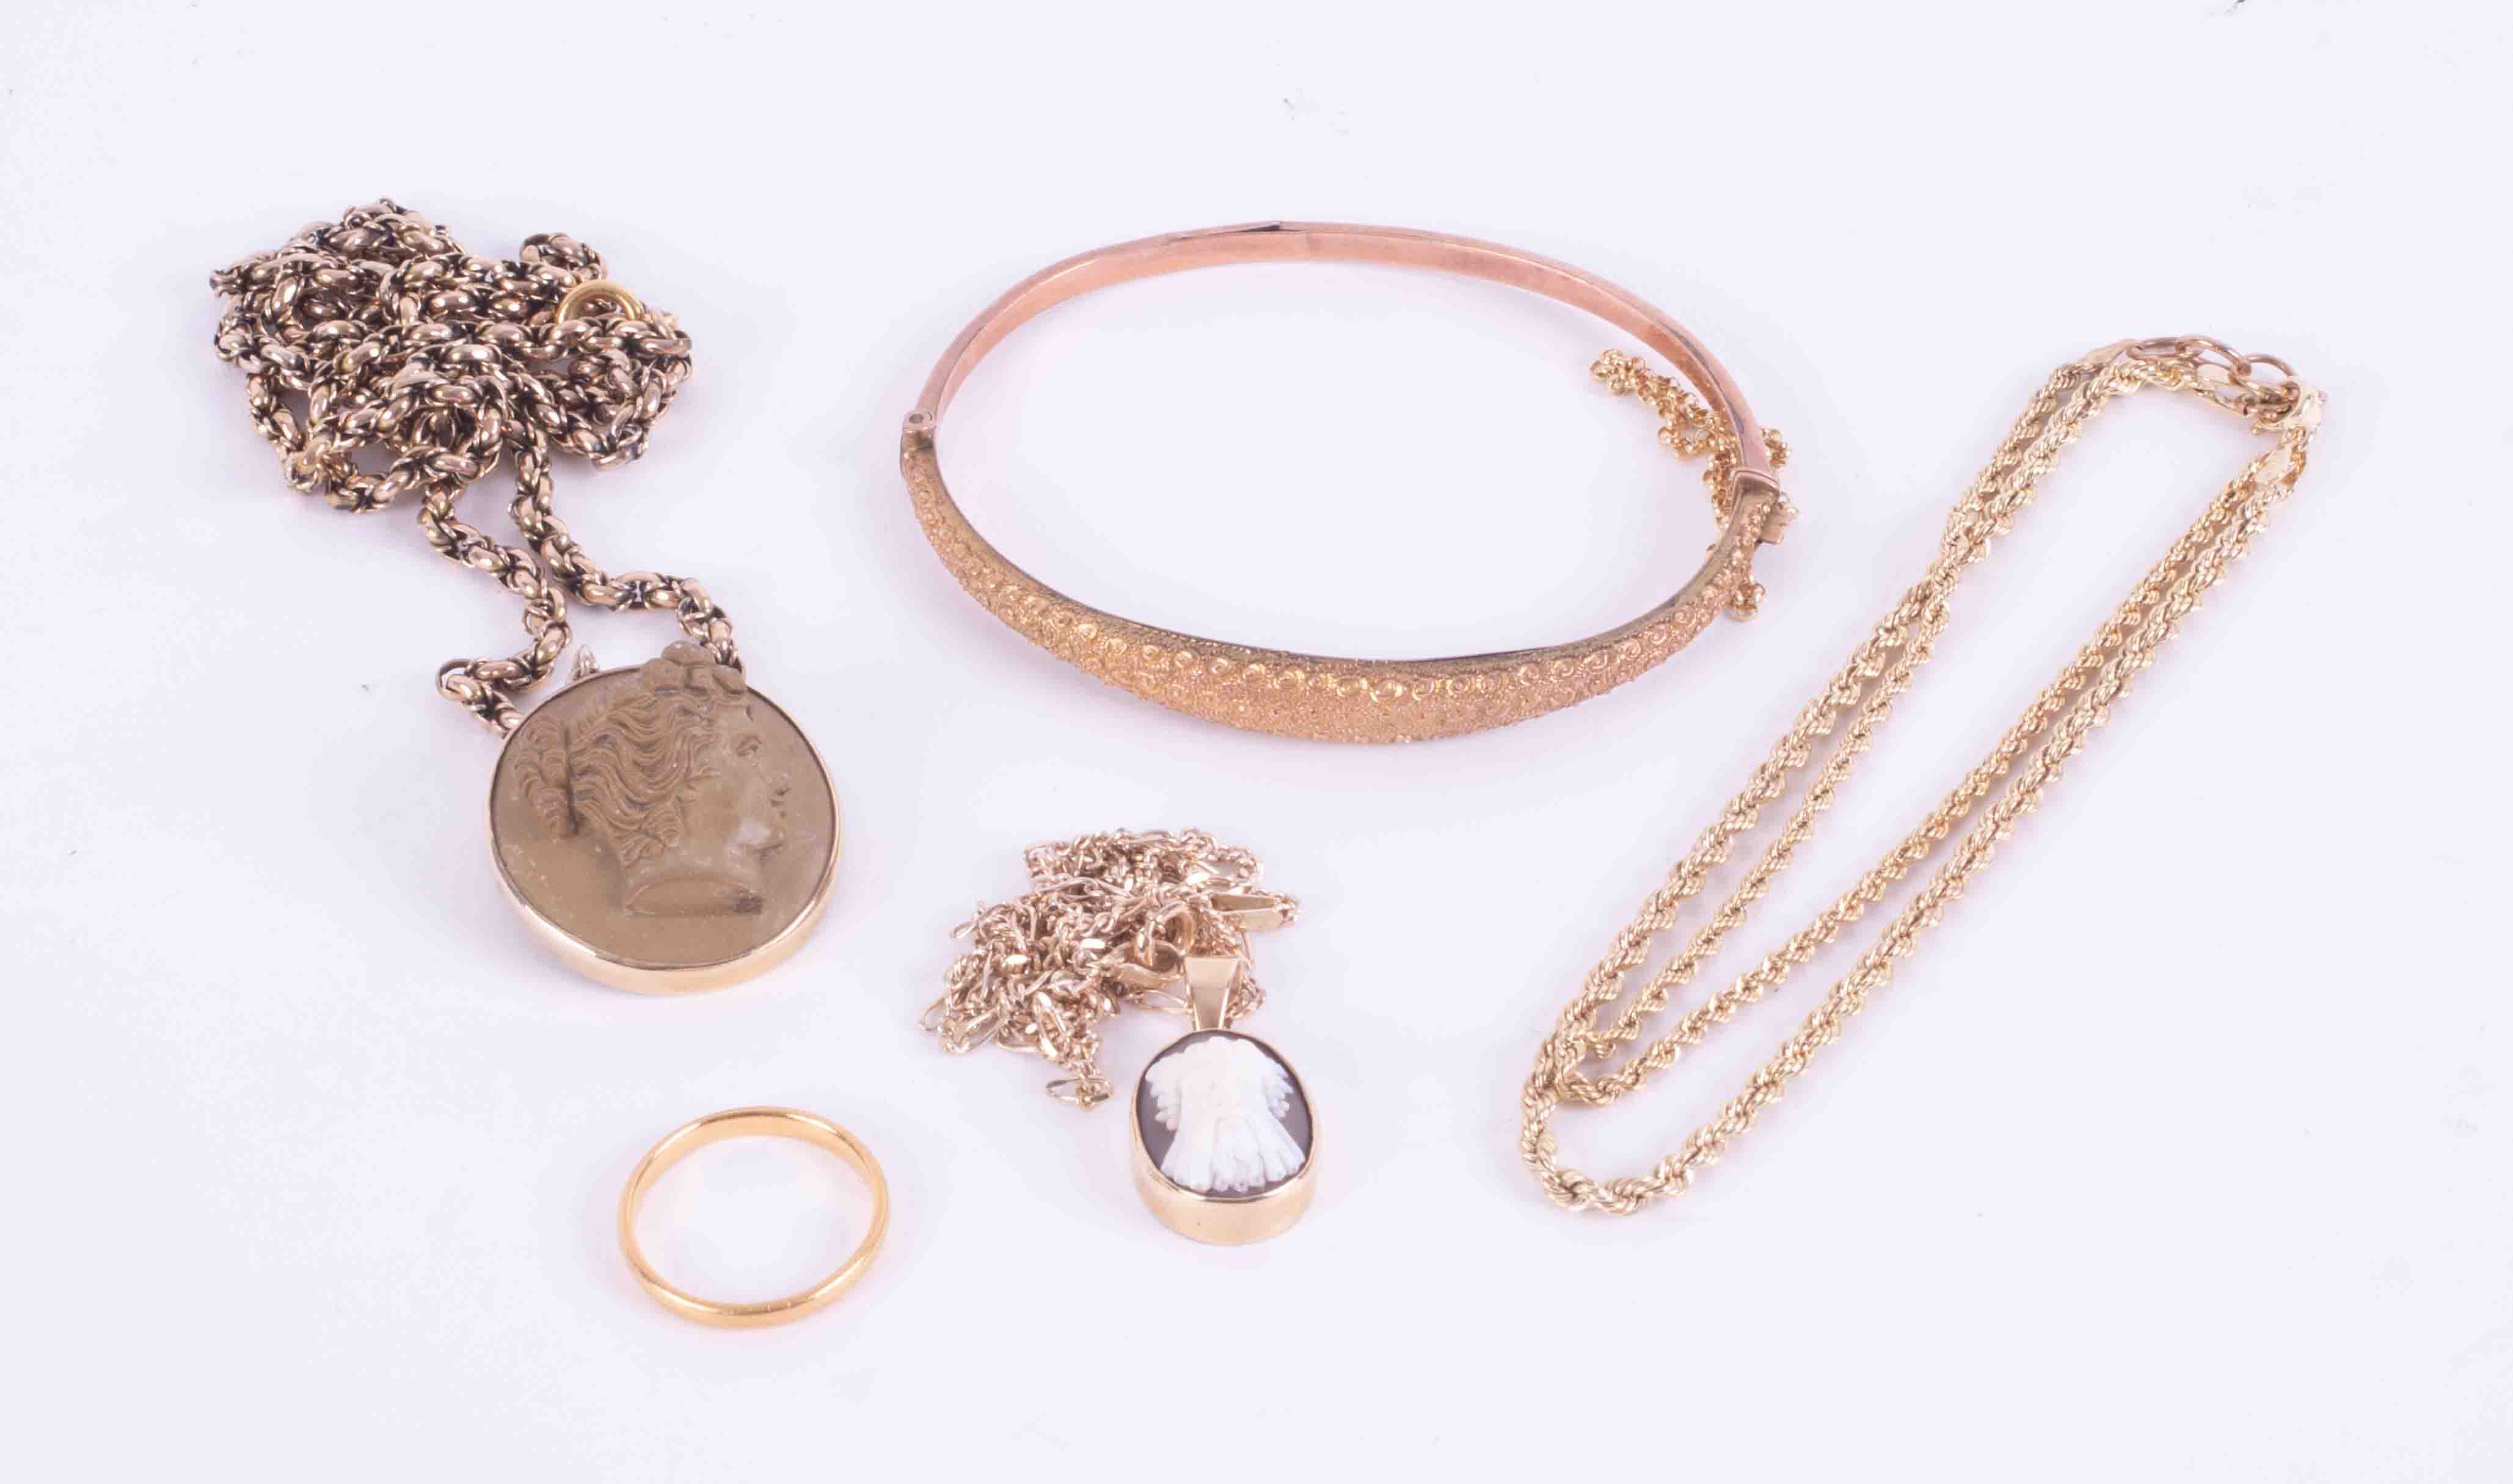 A bag of mixed gold to include 9ct yellow & rose gold bangle, 9ct yellow gold bracelet, 9 ct